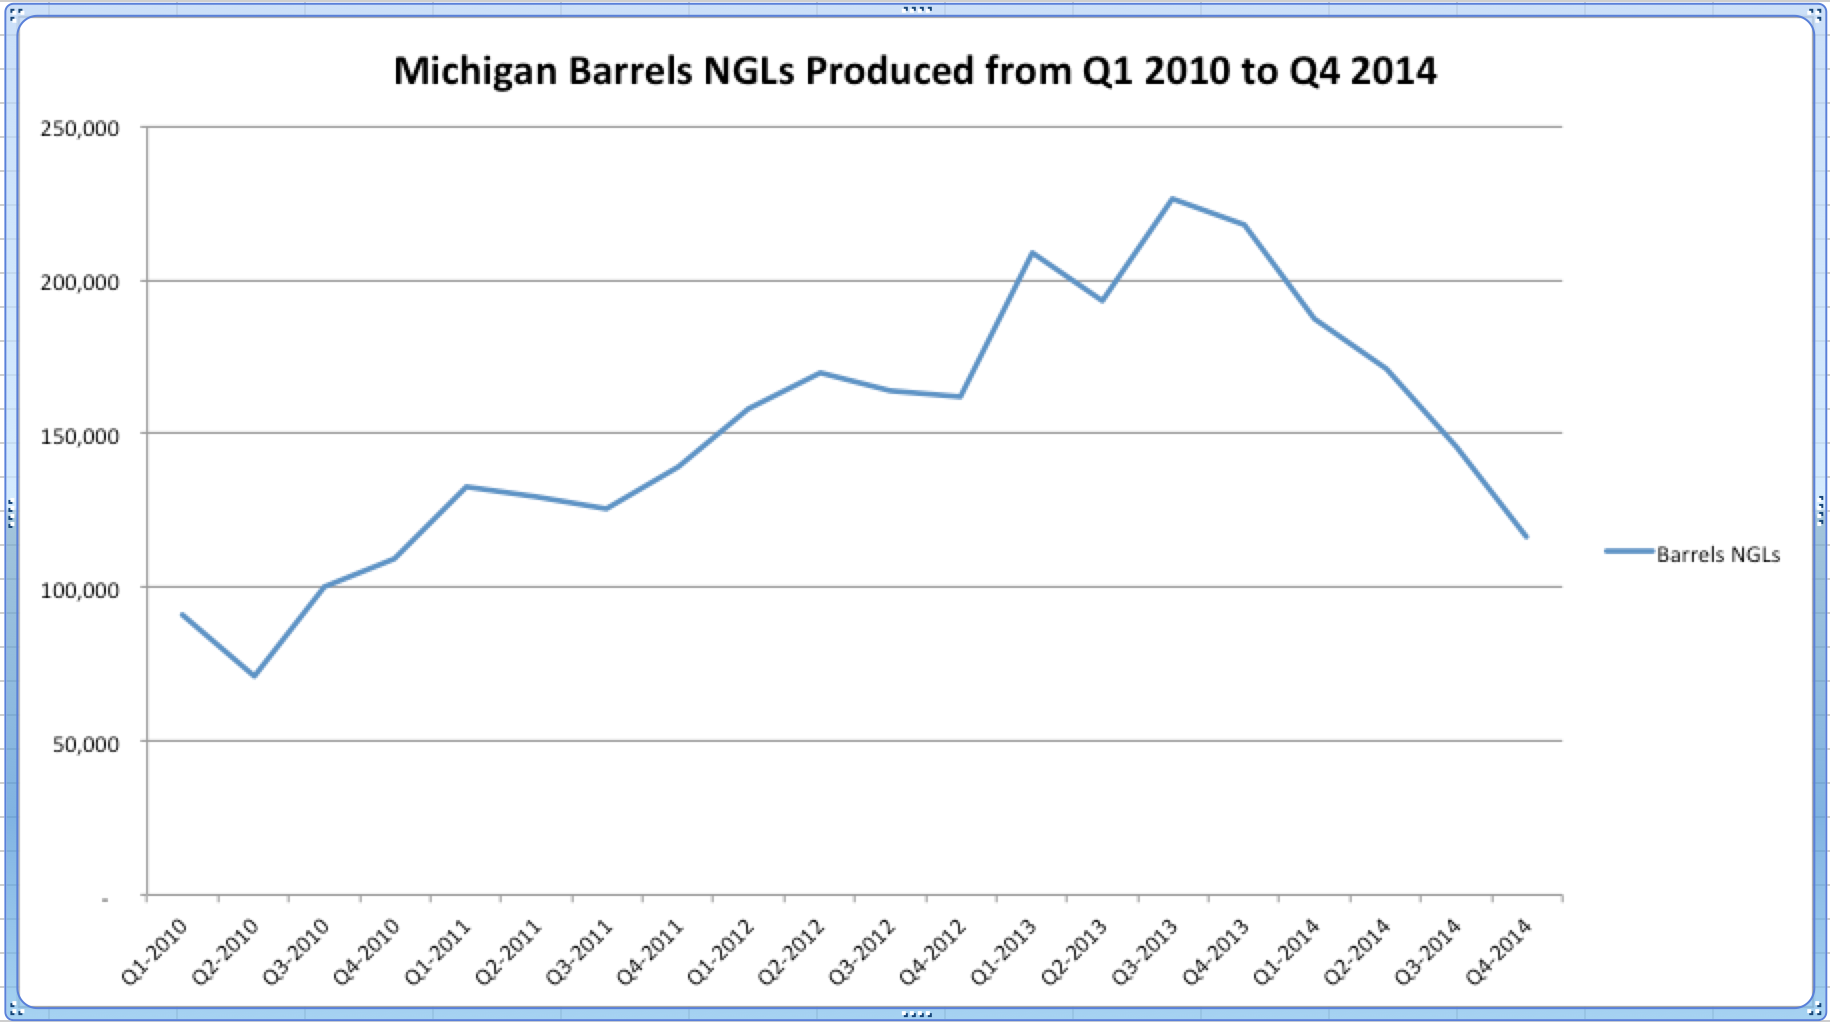 Michigan NGL Production from 2010 to 2014